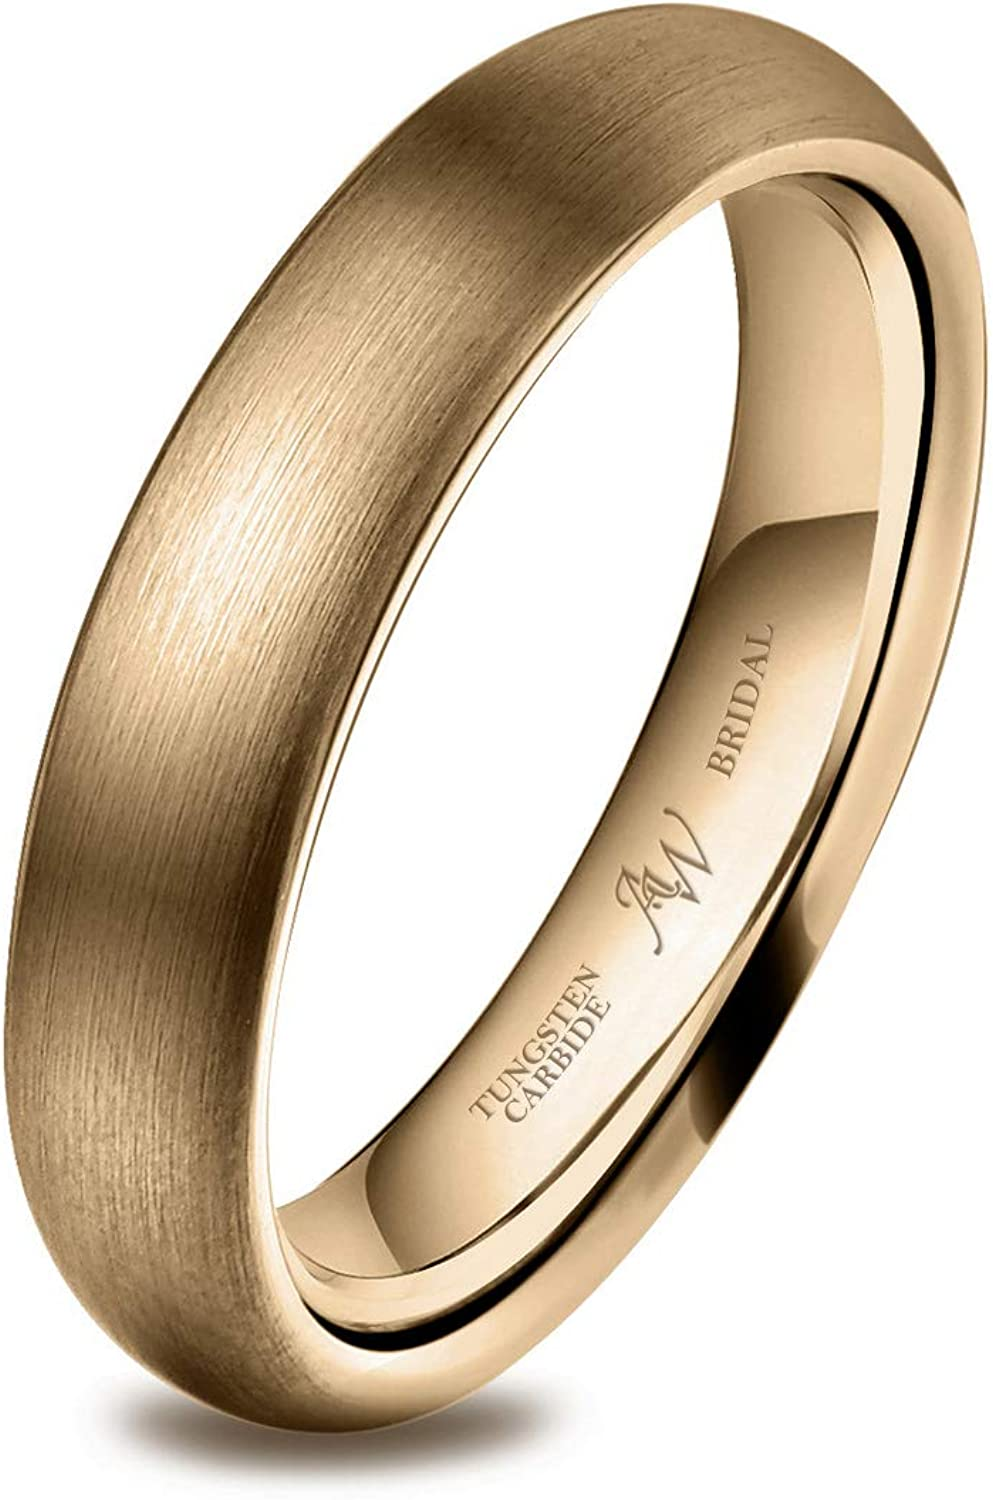 AW BRIDAL Tungsten Carbide Ring Wedding Band Engagement Ring, Silver/Rose Gold/Gold Wedding Ring, 2-8mm, Size 5-15